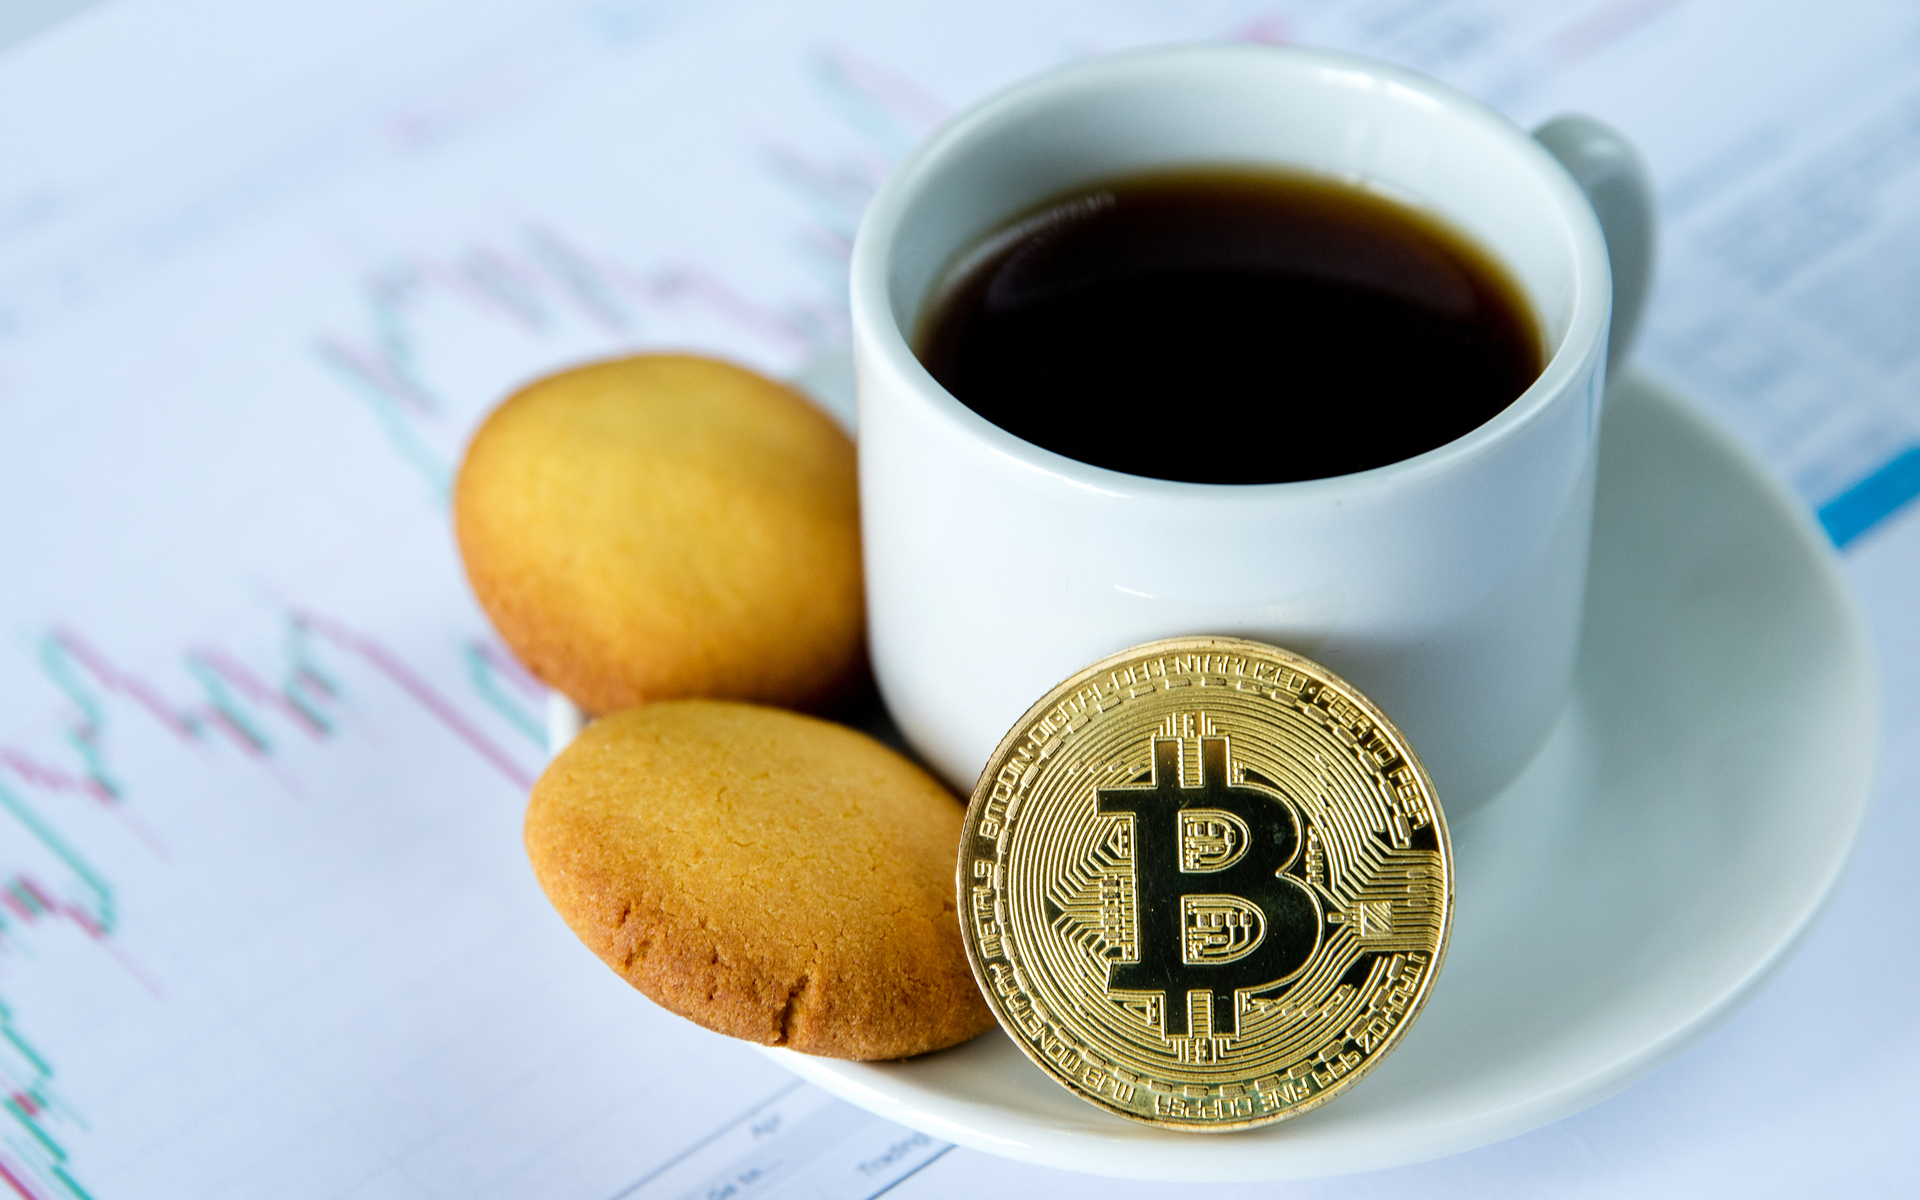 Sunday Digest: Bitcoin Price Moving Up, Arthur Hayes is Back